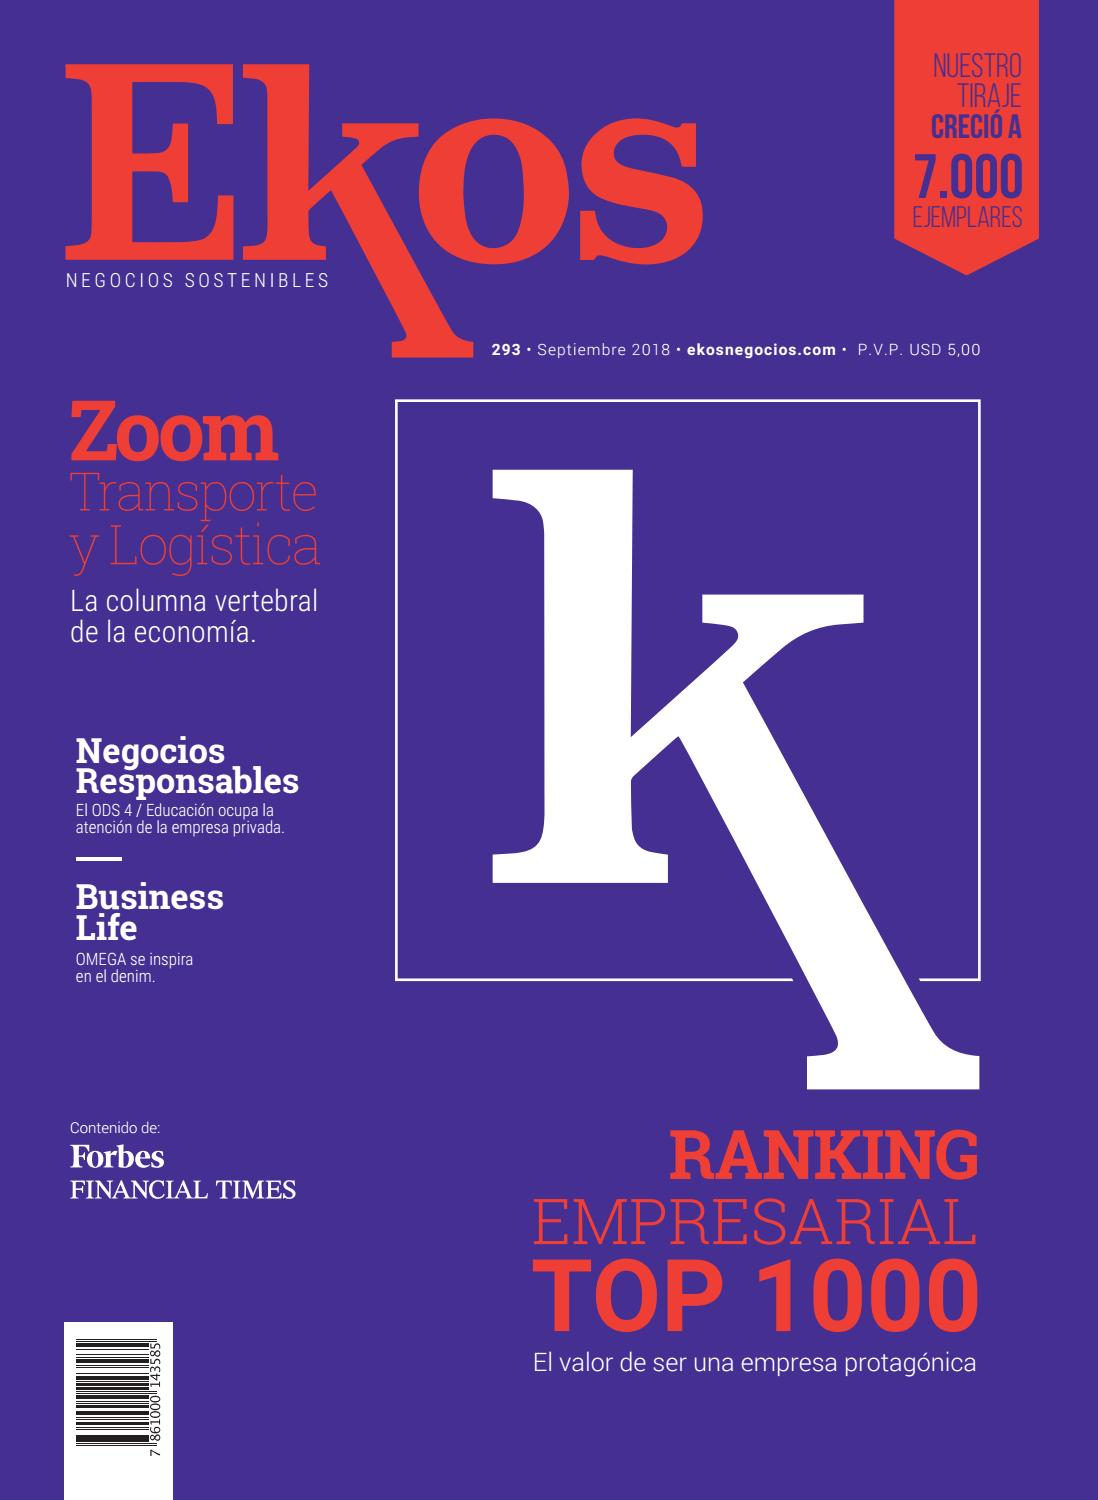 9f9b4153fea4 Revista Ekos – Ranking Empresarial TOP 1000 by Ekos - issuu